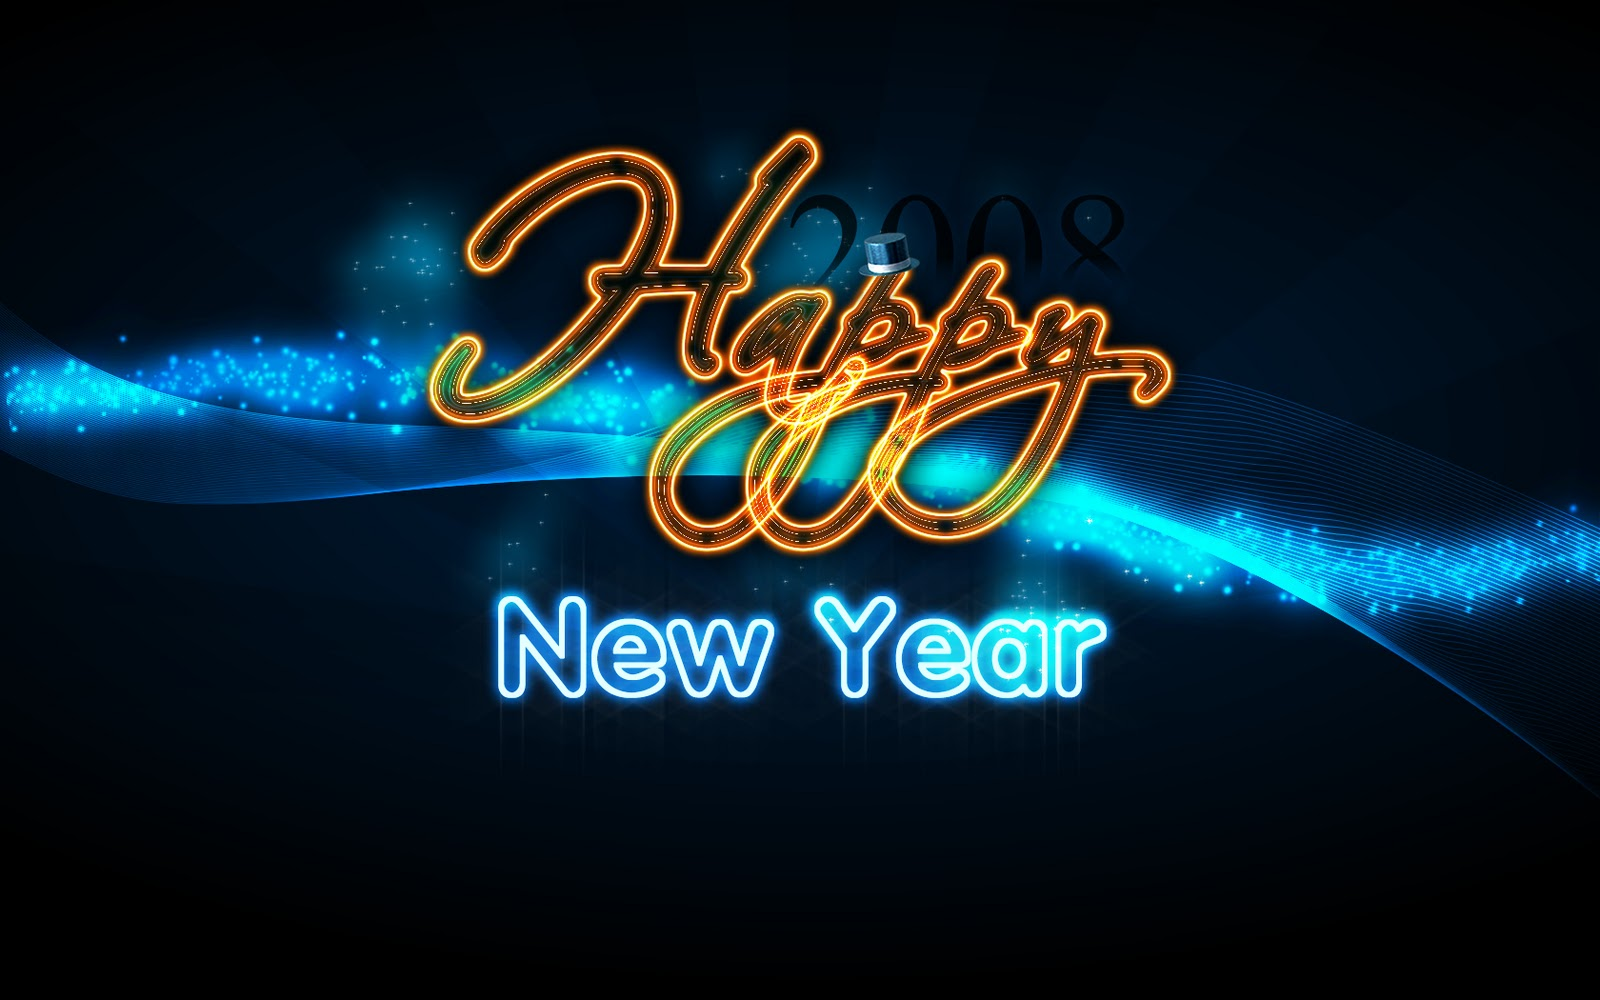 Happy New Year 2013 Wallpapers 3D Wallpaper Nature 1600x1000